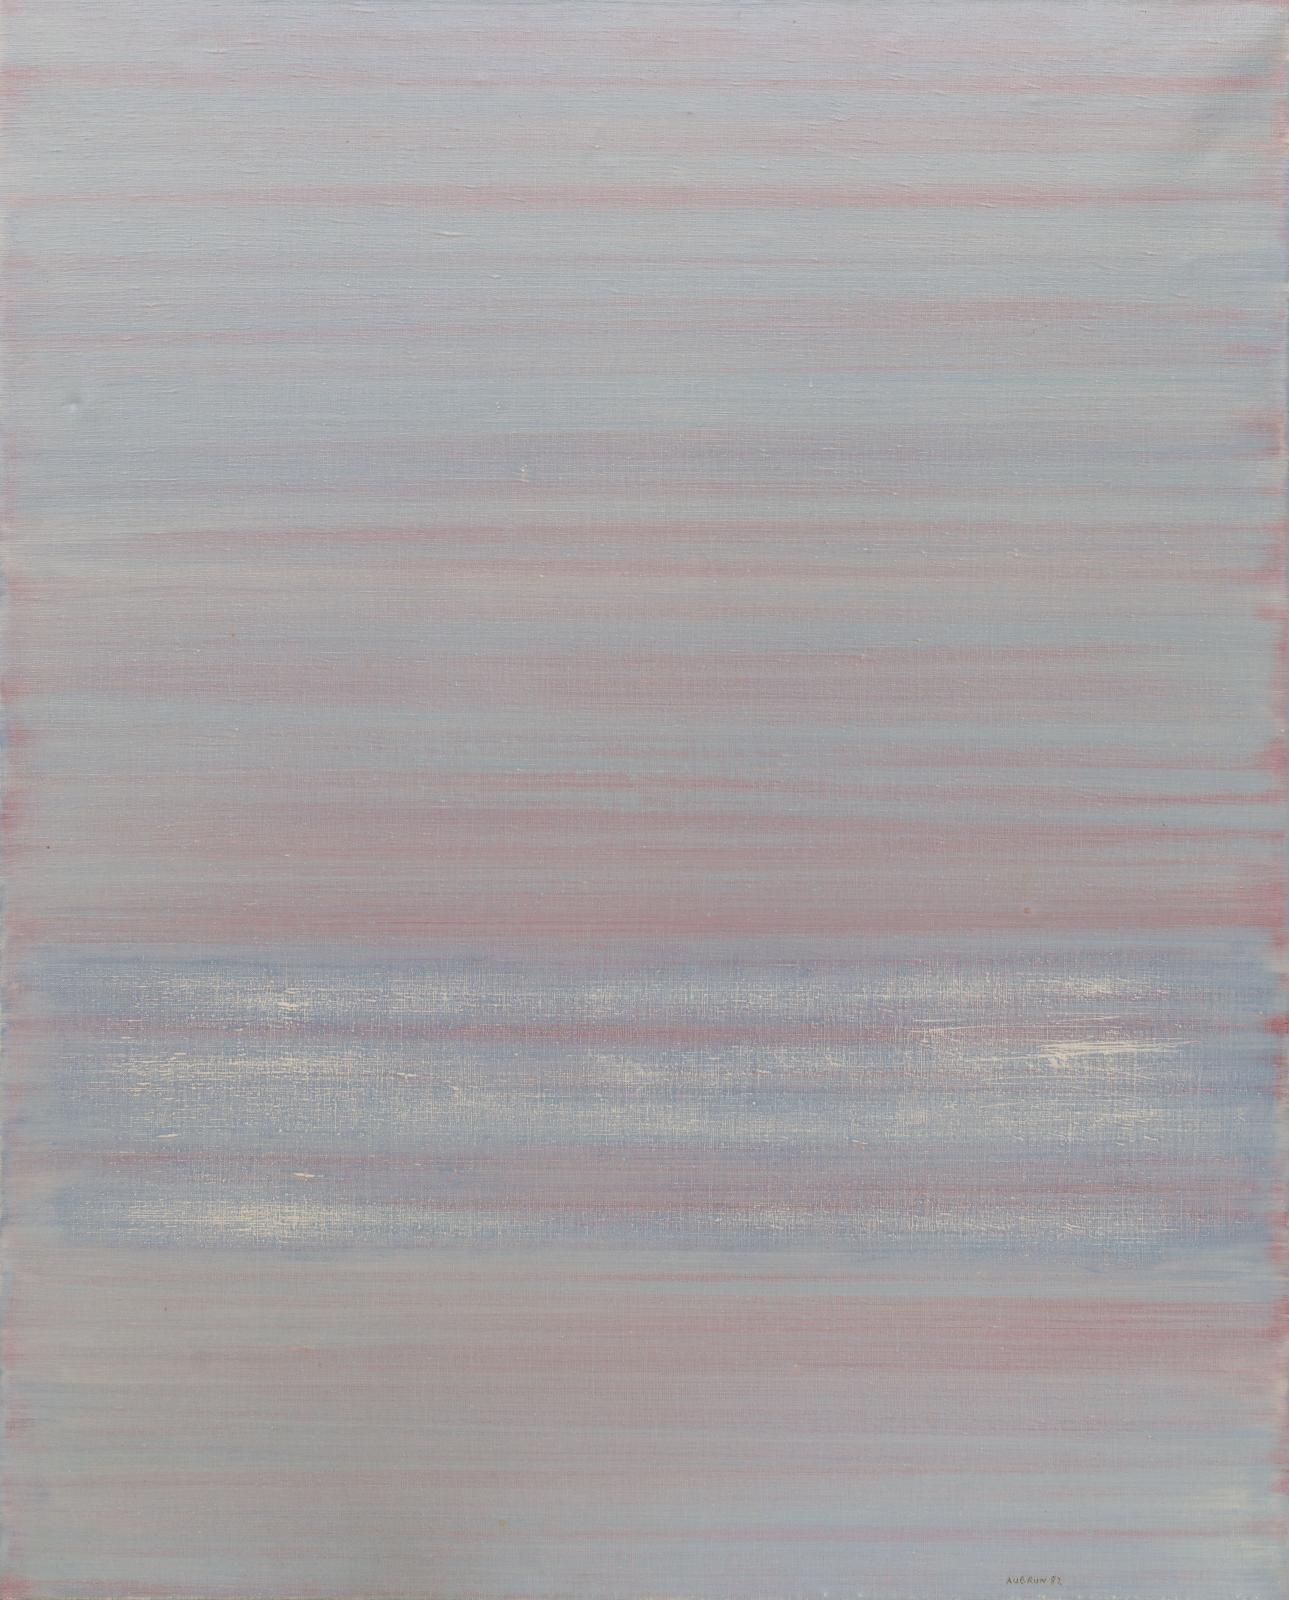 An abstract painting in cool horizontal stripes